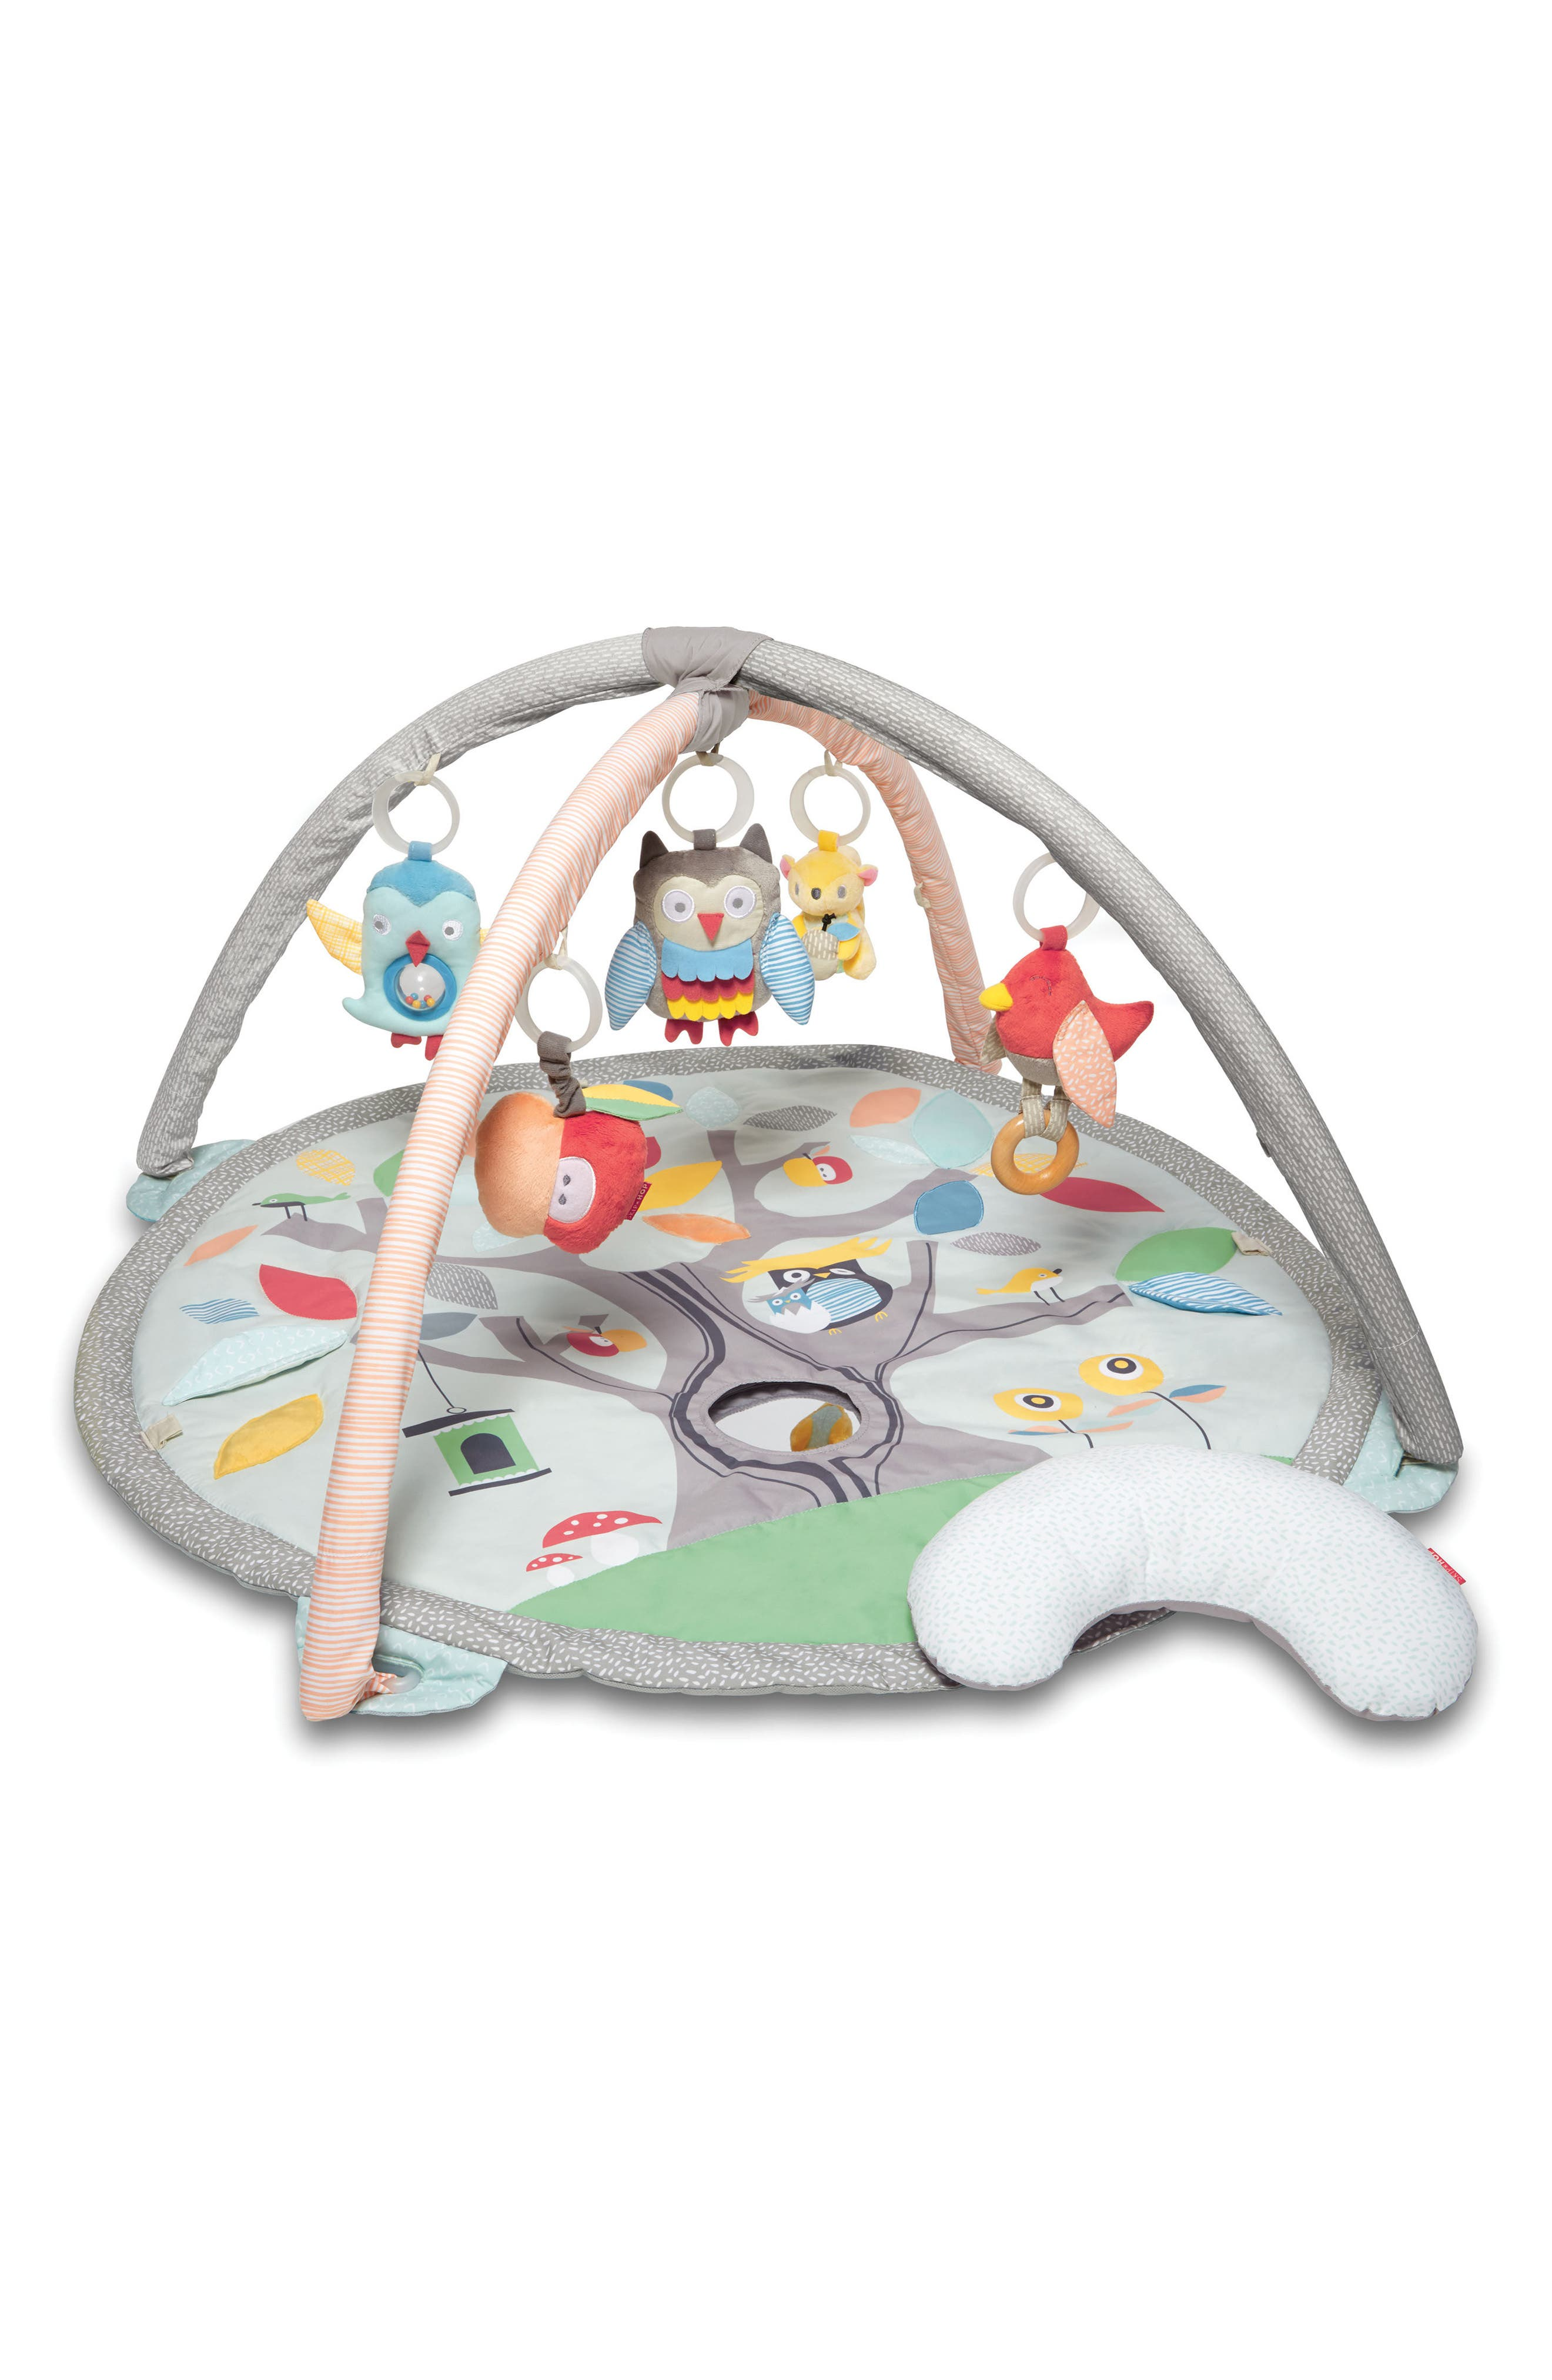 Skip Hop 'Treetop Friends' Activity Gym